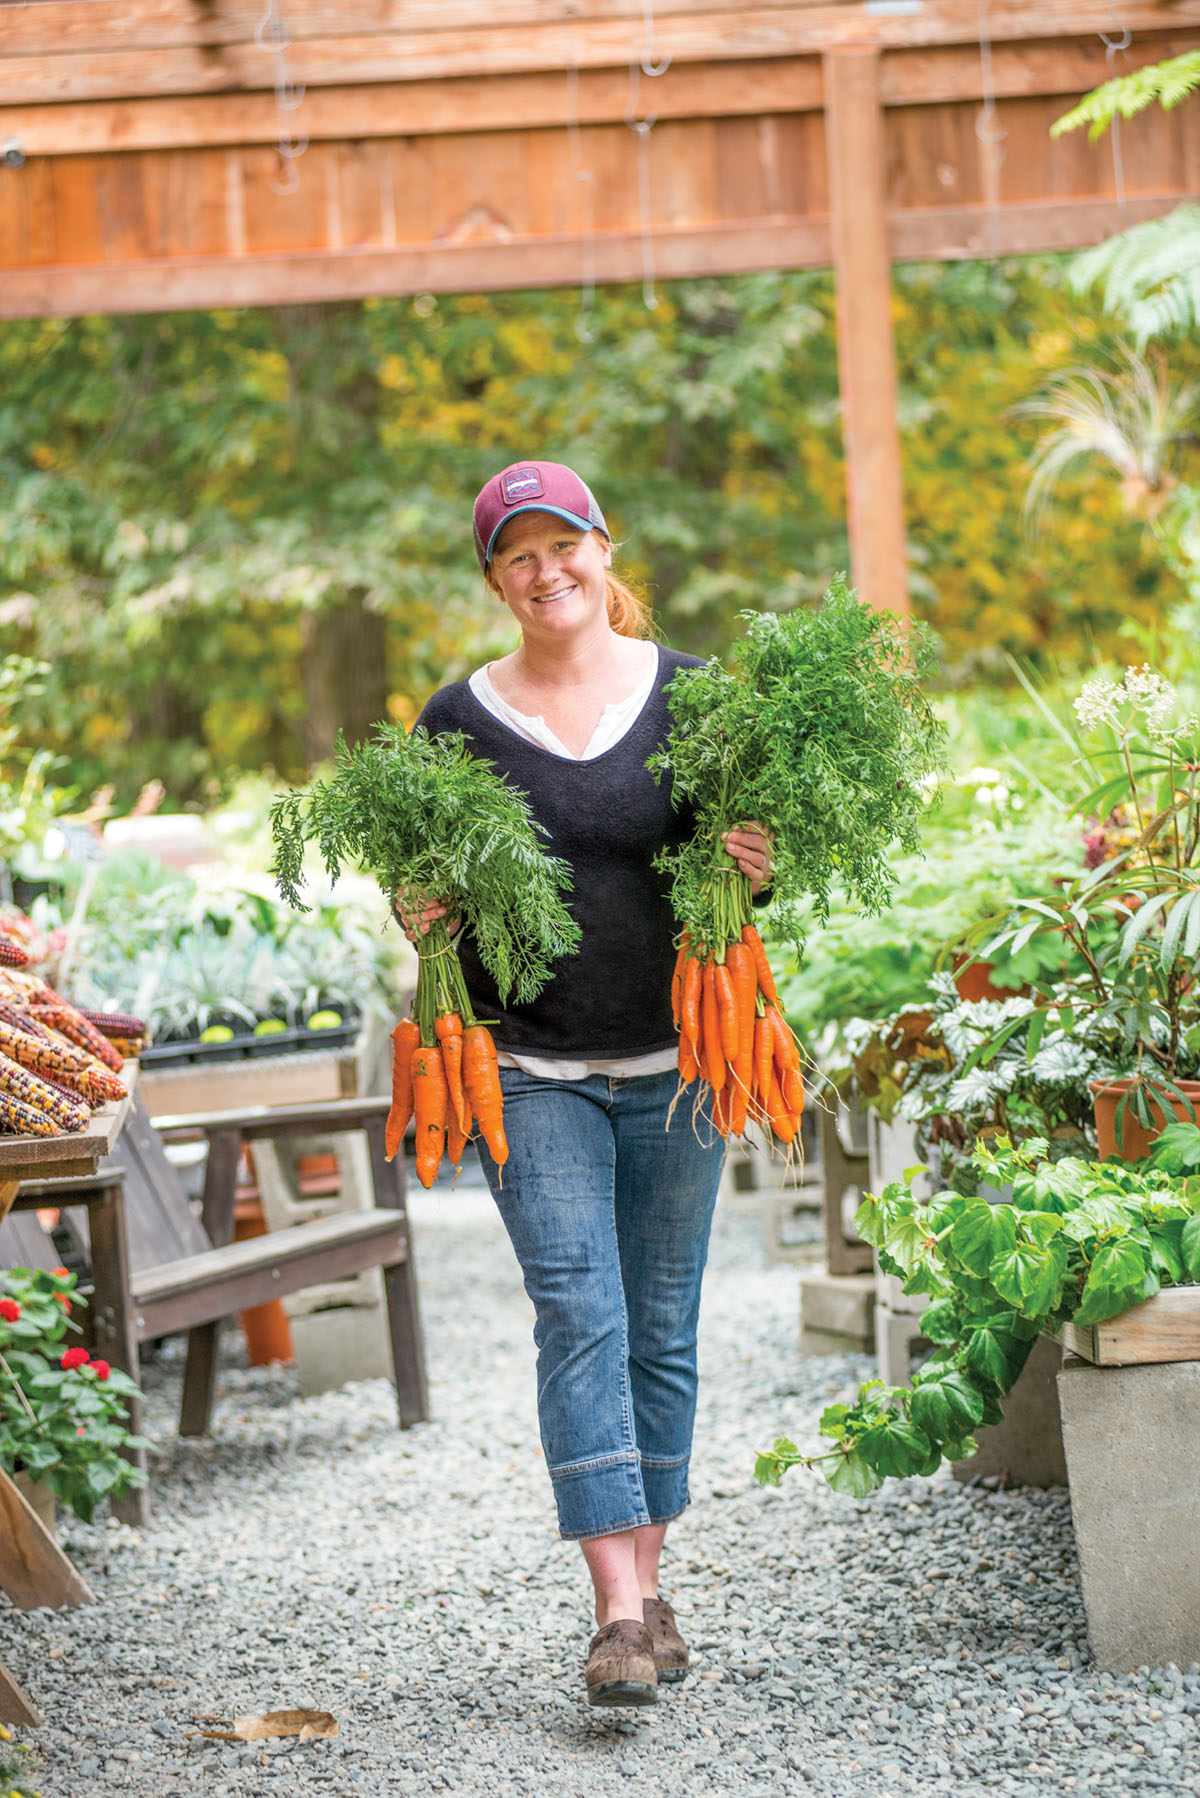 Allie Boeri, wearing her red hair in a ponytail under a ballcap, walks through the open-air farmers market carrying a bunch of carrots in each hand